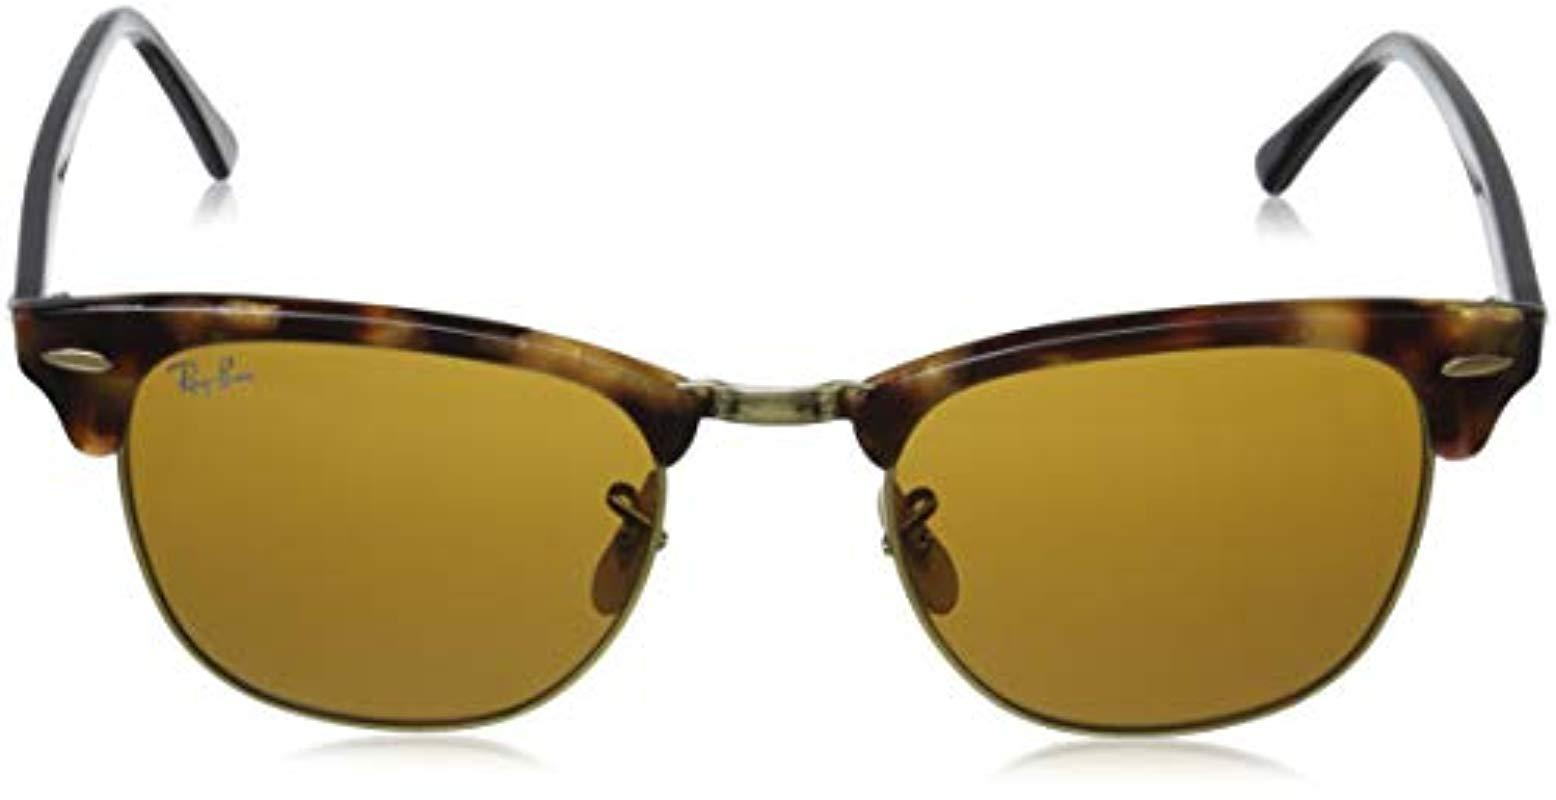 e0ce5f5985f83 Ray-Ban - Clubmaster Sunglasses In Spotted Brown Havana Rb3016 1160 51 for  Men -. View fullscreen